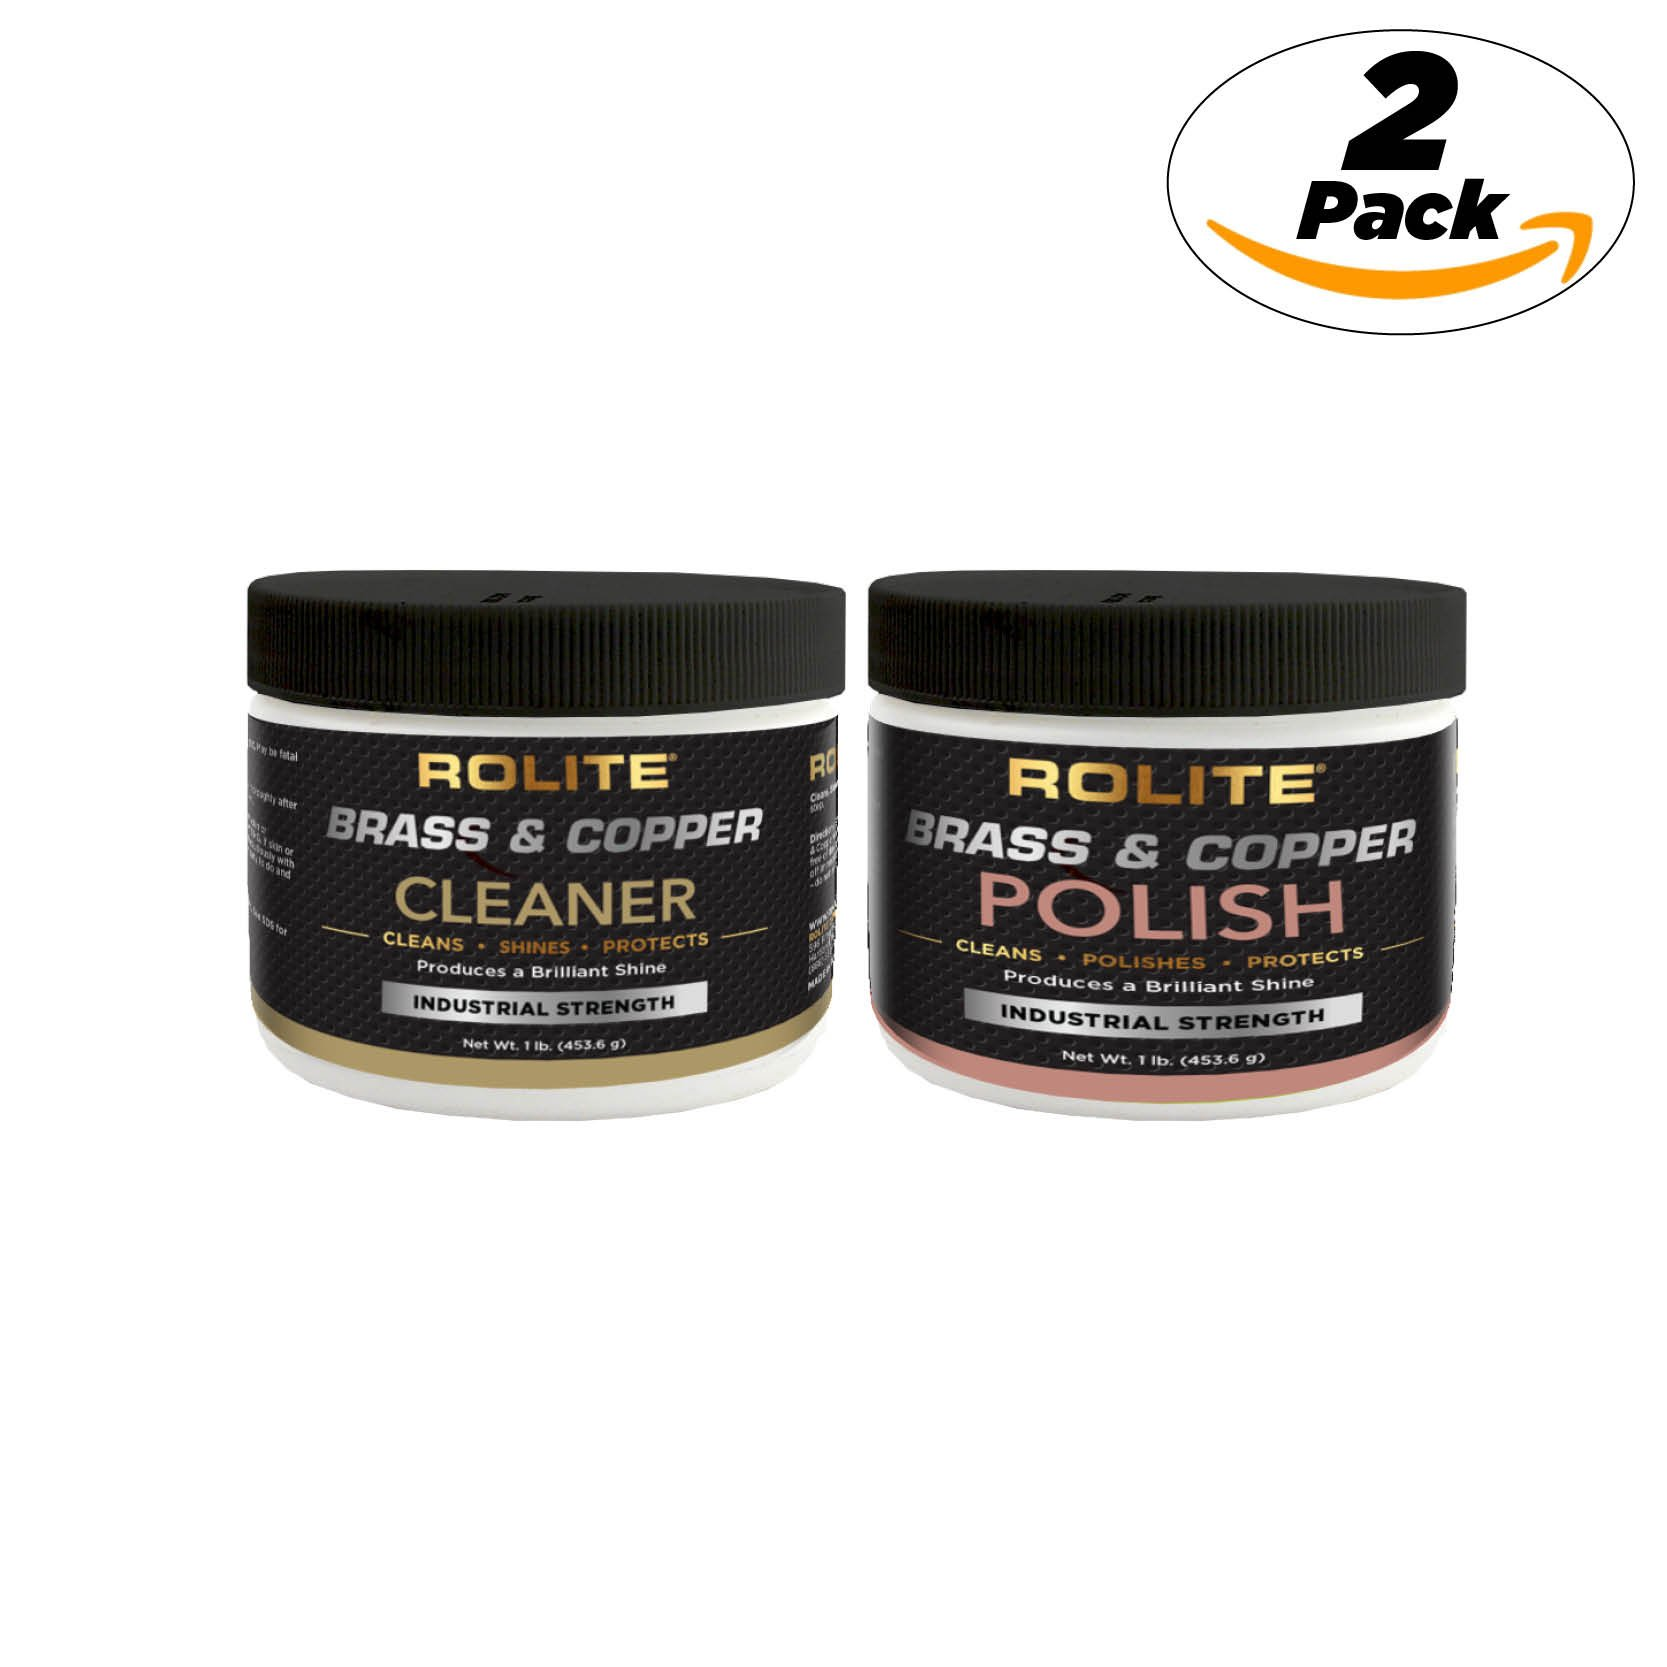 Rolite Brass & Copper Cleaner & Brass & Copper Polish (1lb) for The Ultimate Clean & Shine on All Metal Surfaces Combo Pack